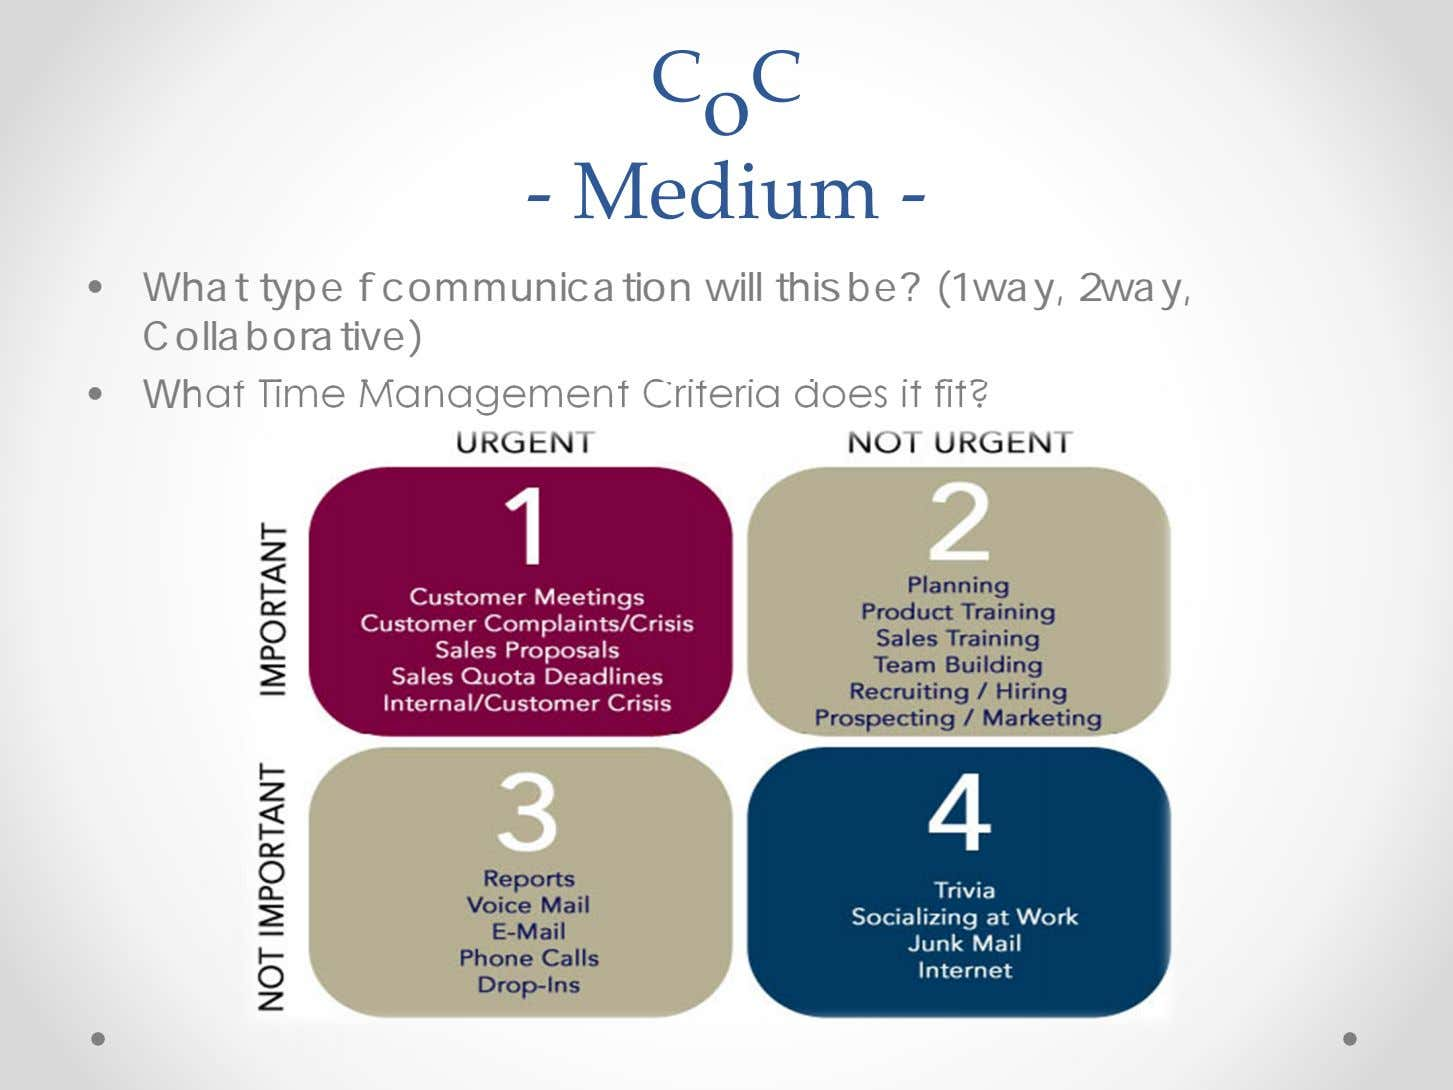 C o C ‐ Medium ‐ • What type f communication will this be? (1way,